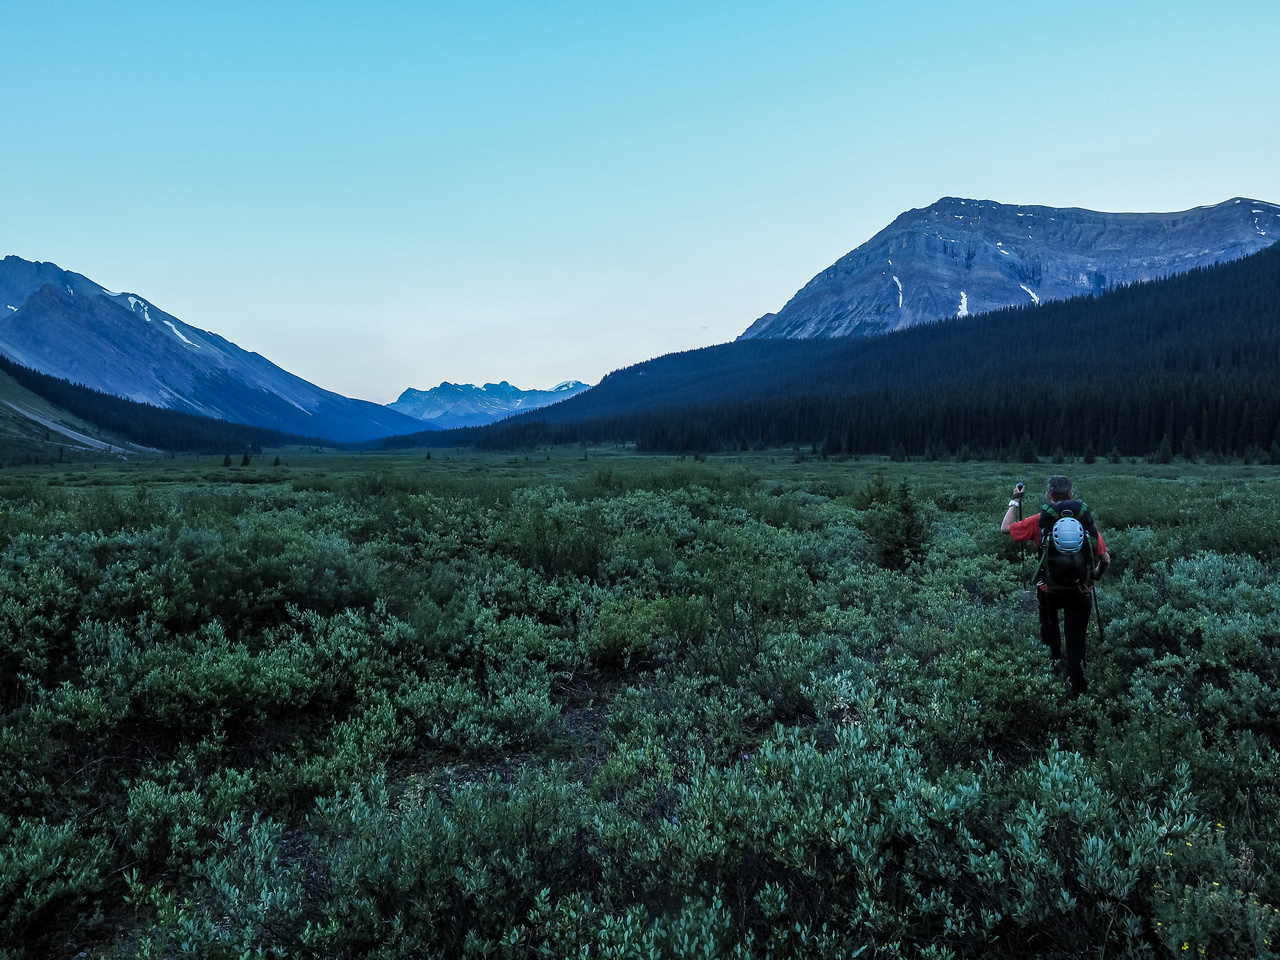 Recrossing the flats before Three Brothers Creek in distinctive blue early morning lighting.